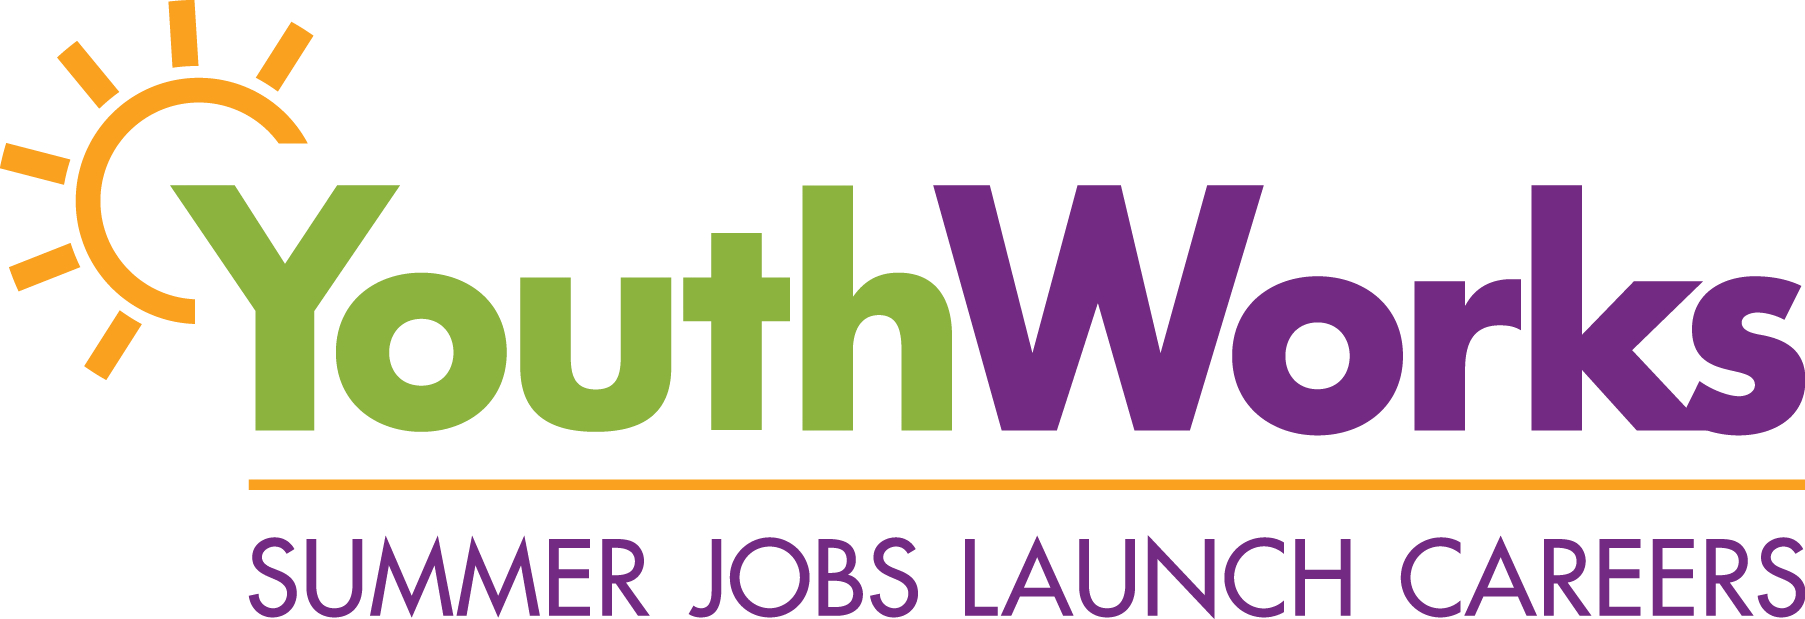 Mayor's Office of Employment Development: Youthworks (#855)